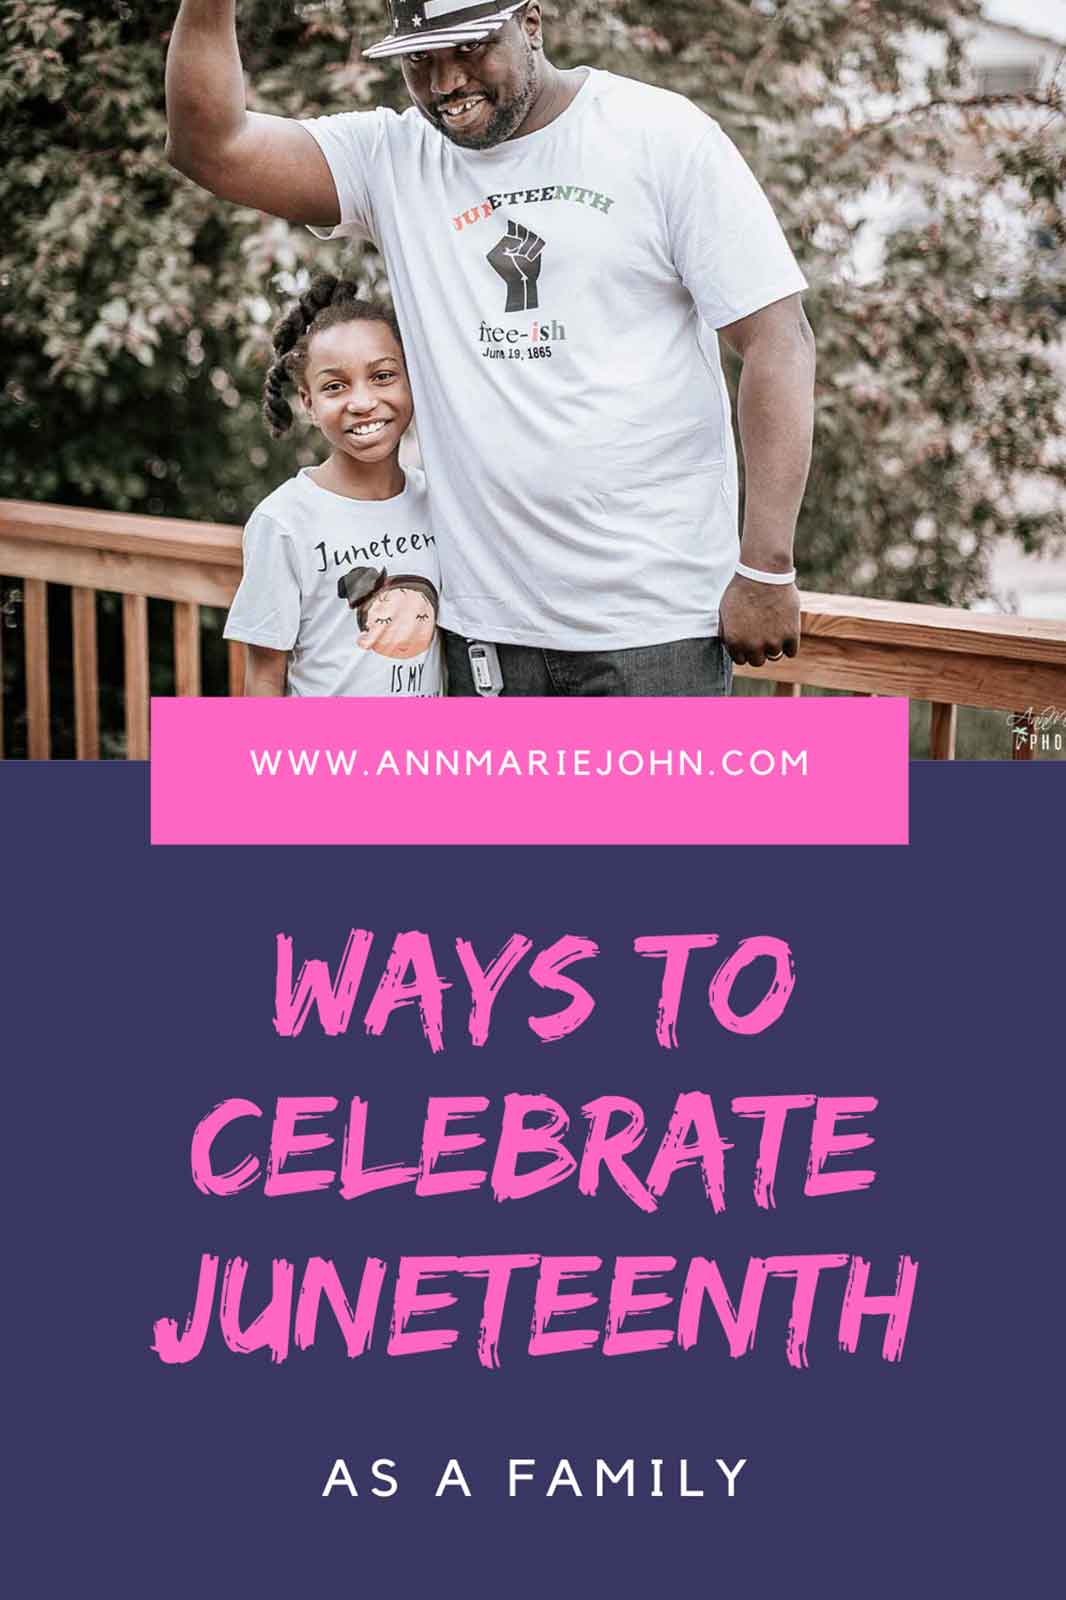 Ways to Celebrate Juneteenth as a Family